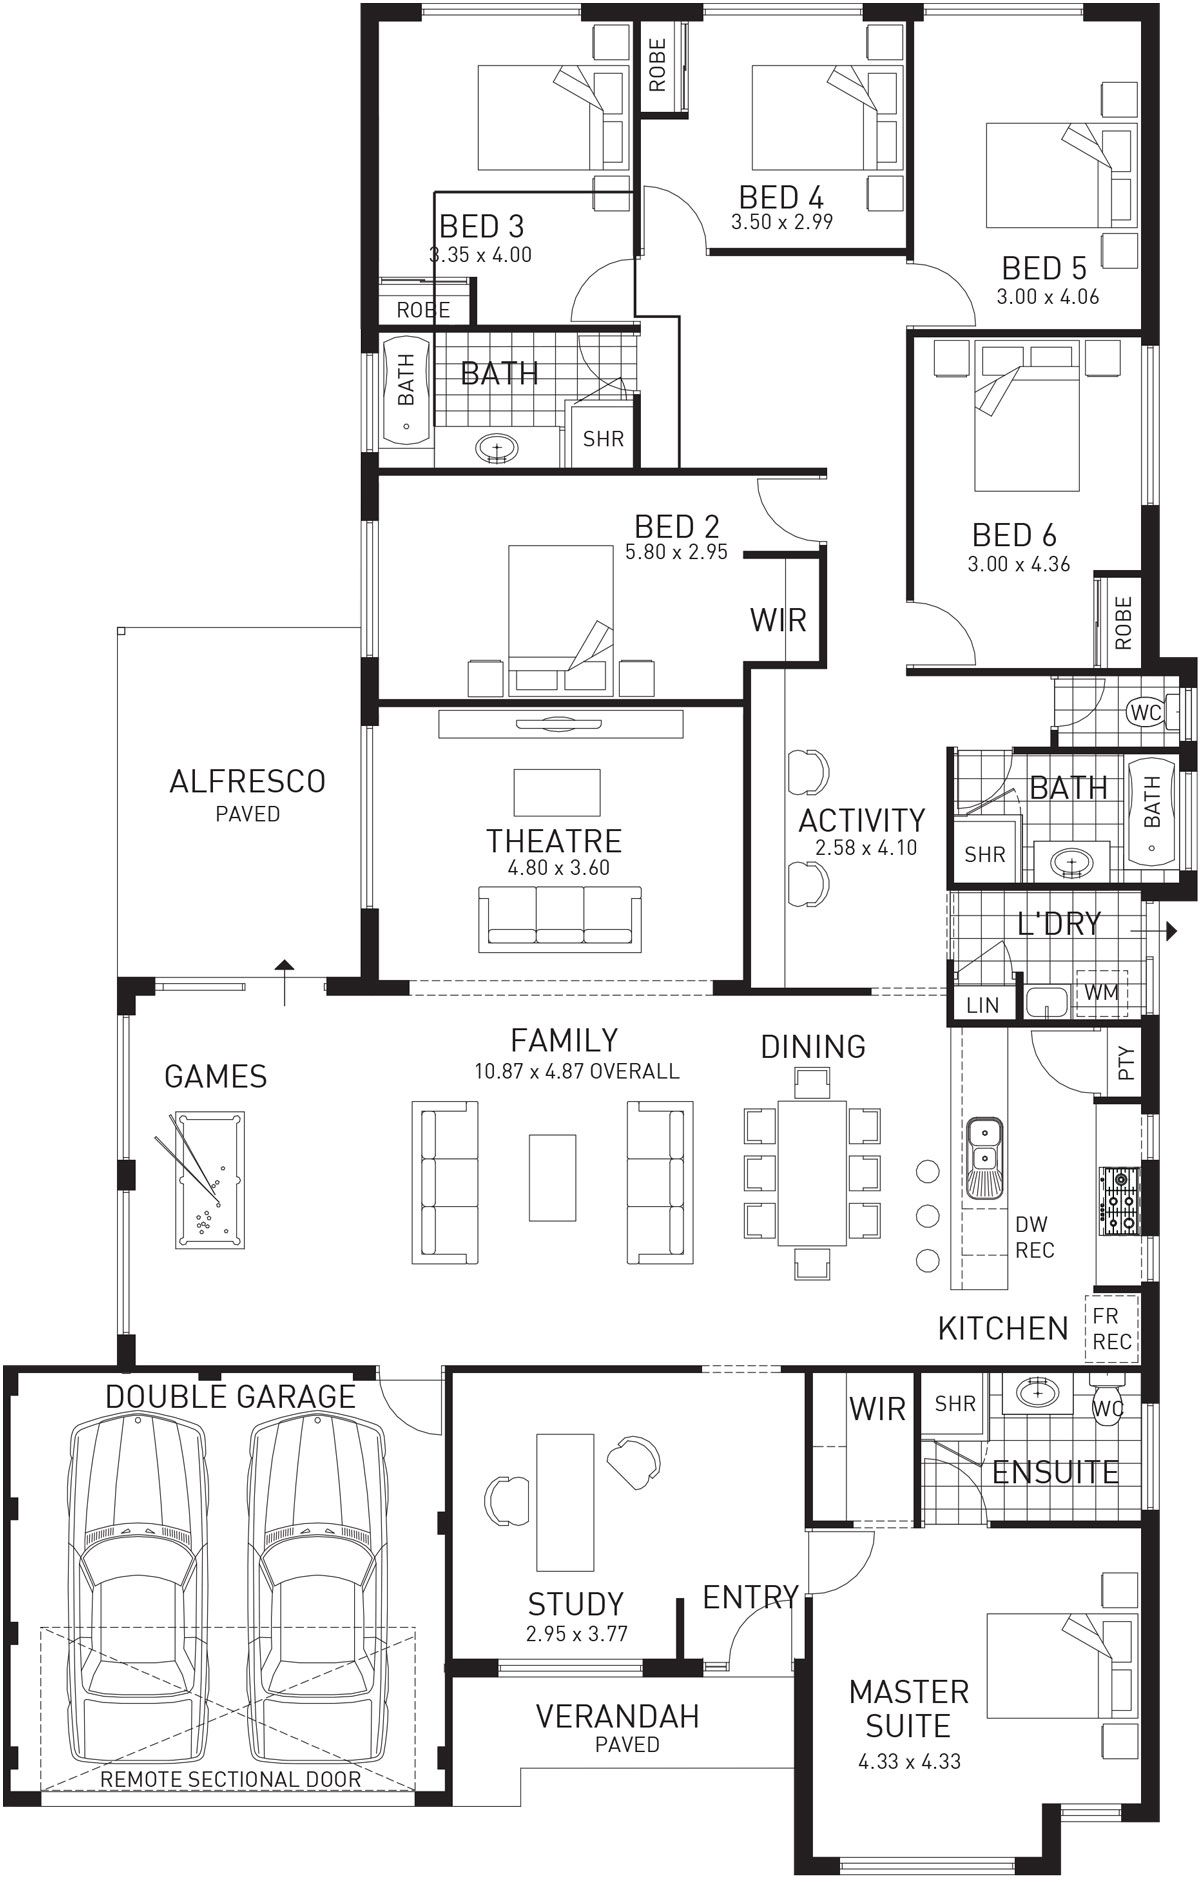 House Designs Home Designs Plunkett Homes Family House Plans Large Family House Plan Dream House Plans